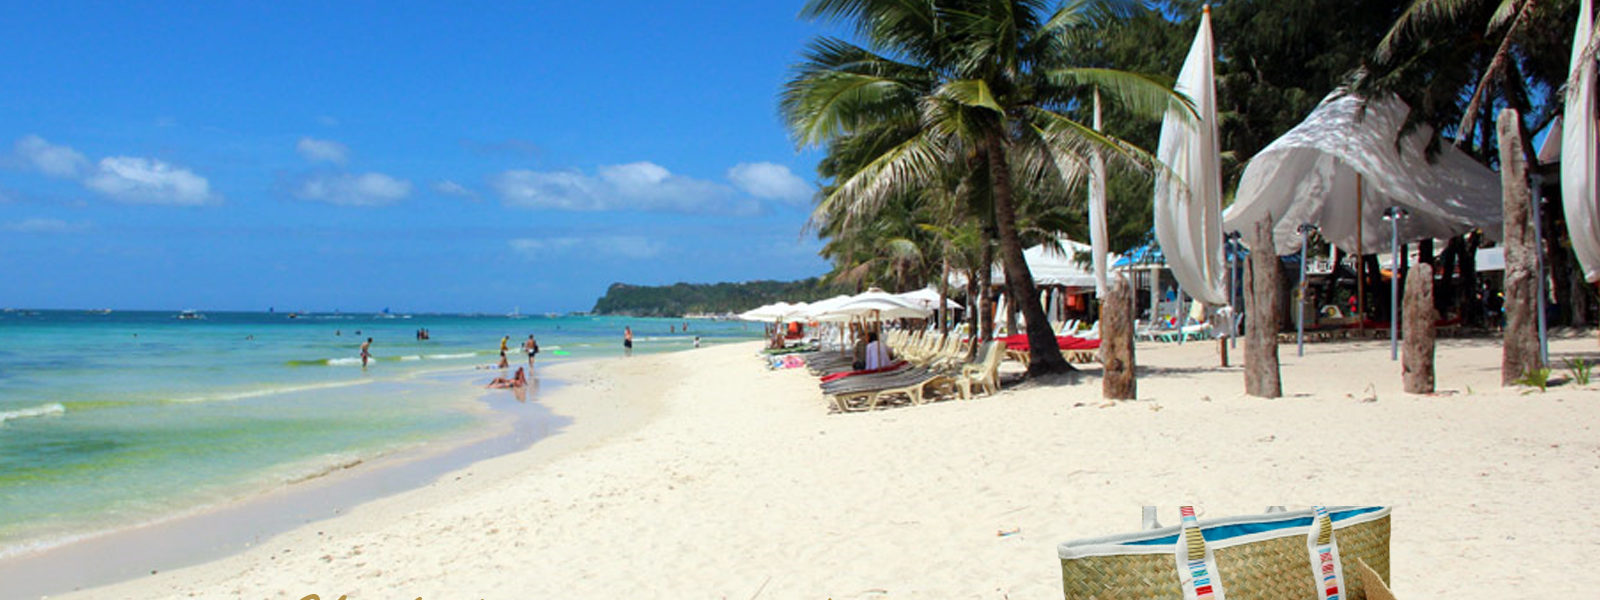 Check list for Boracay trip